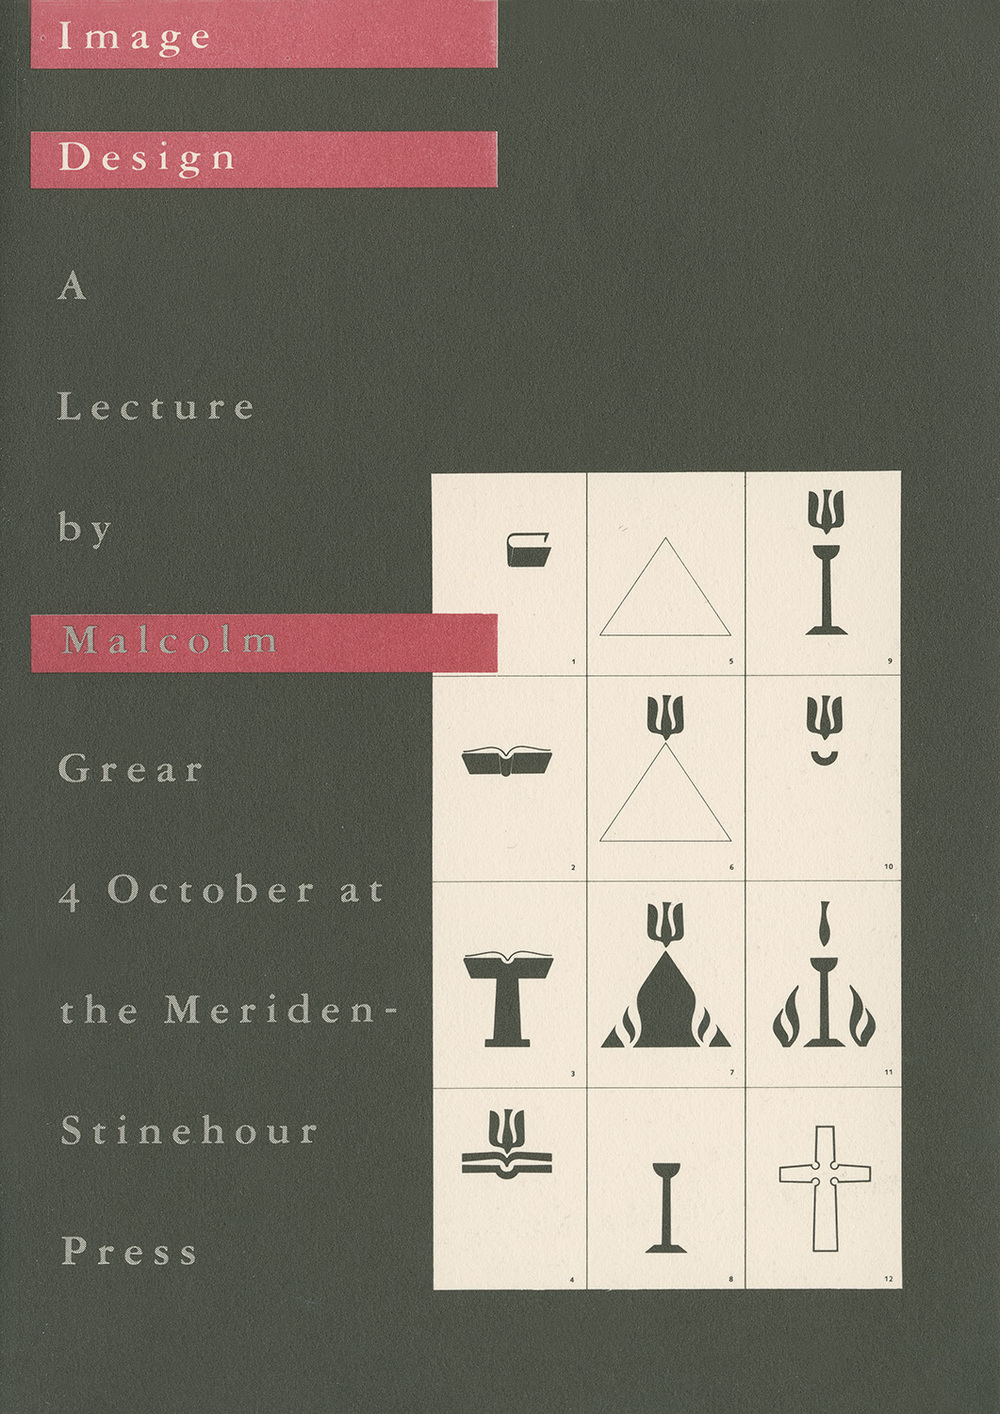 Image Design , A lecture by Malcom Grear